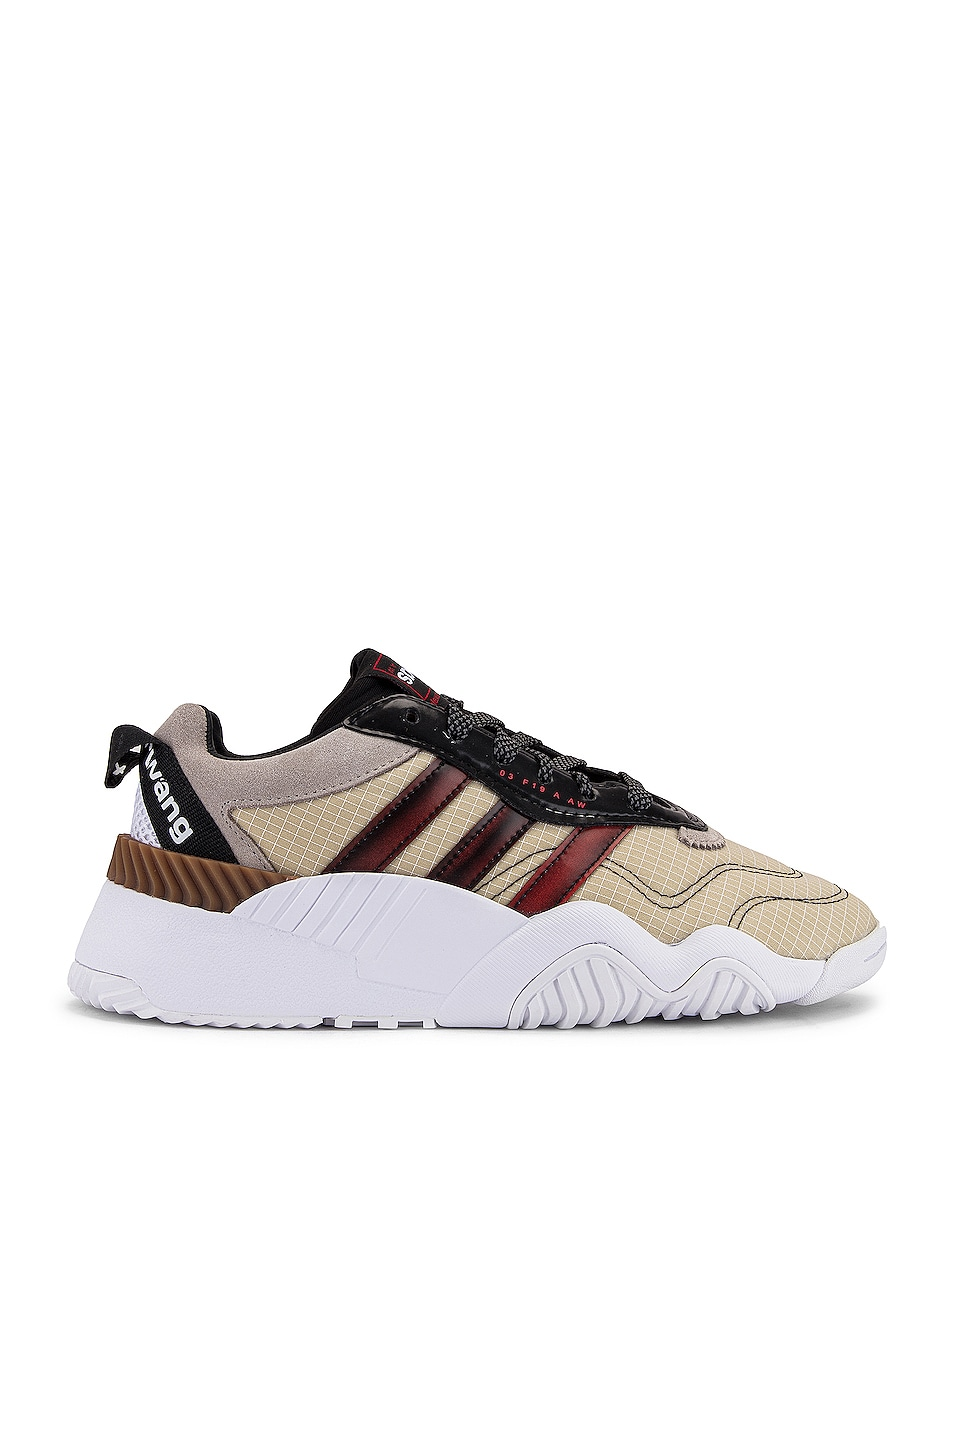 Image 1 of adidas by Alexander Wang V Turnout Trainer Sneaker in Core Black, Light Brown & Bright Red